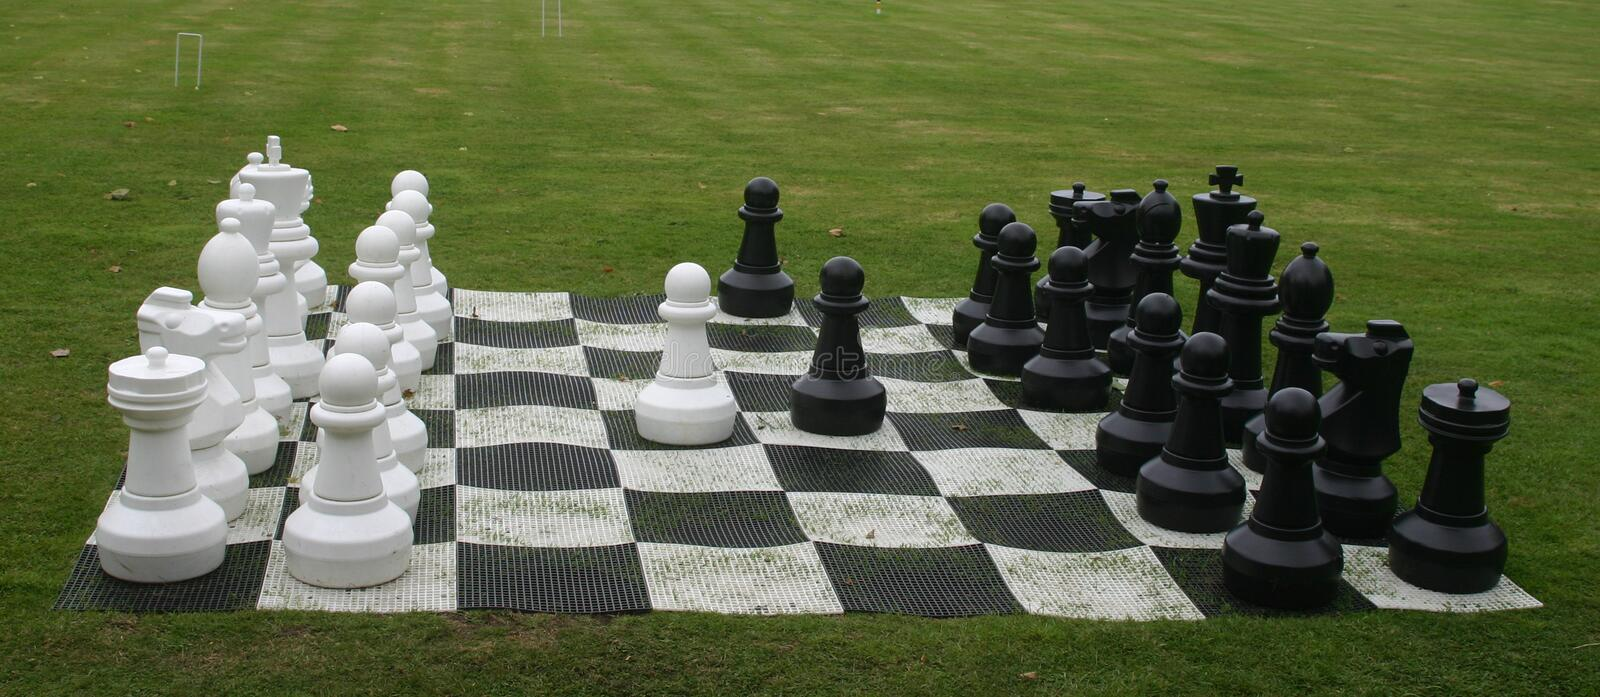 Outdoor chess game. Outdoor large size chess set laid out on a grass lawn. Pieces appear to be in the correct places stock image